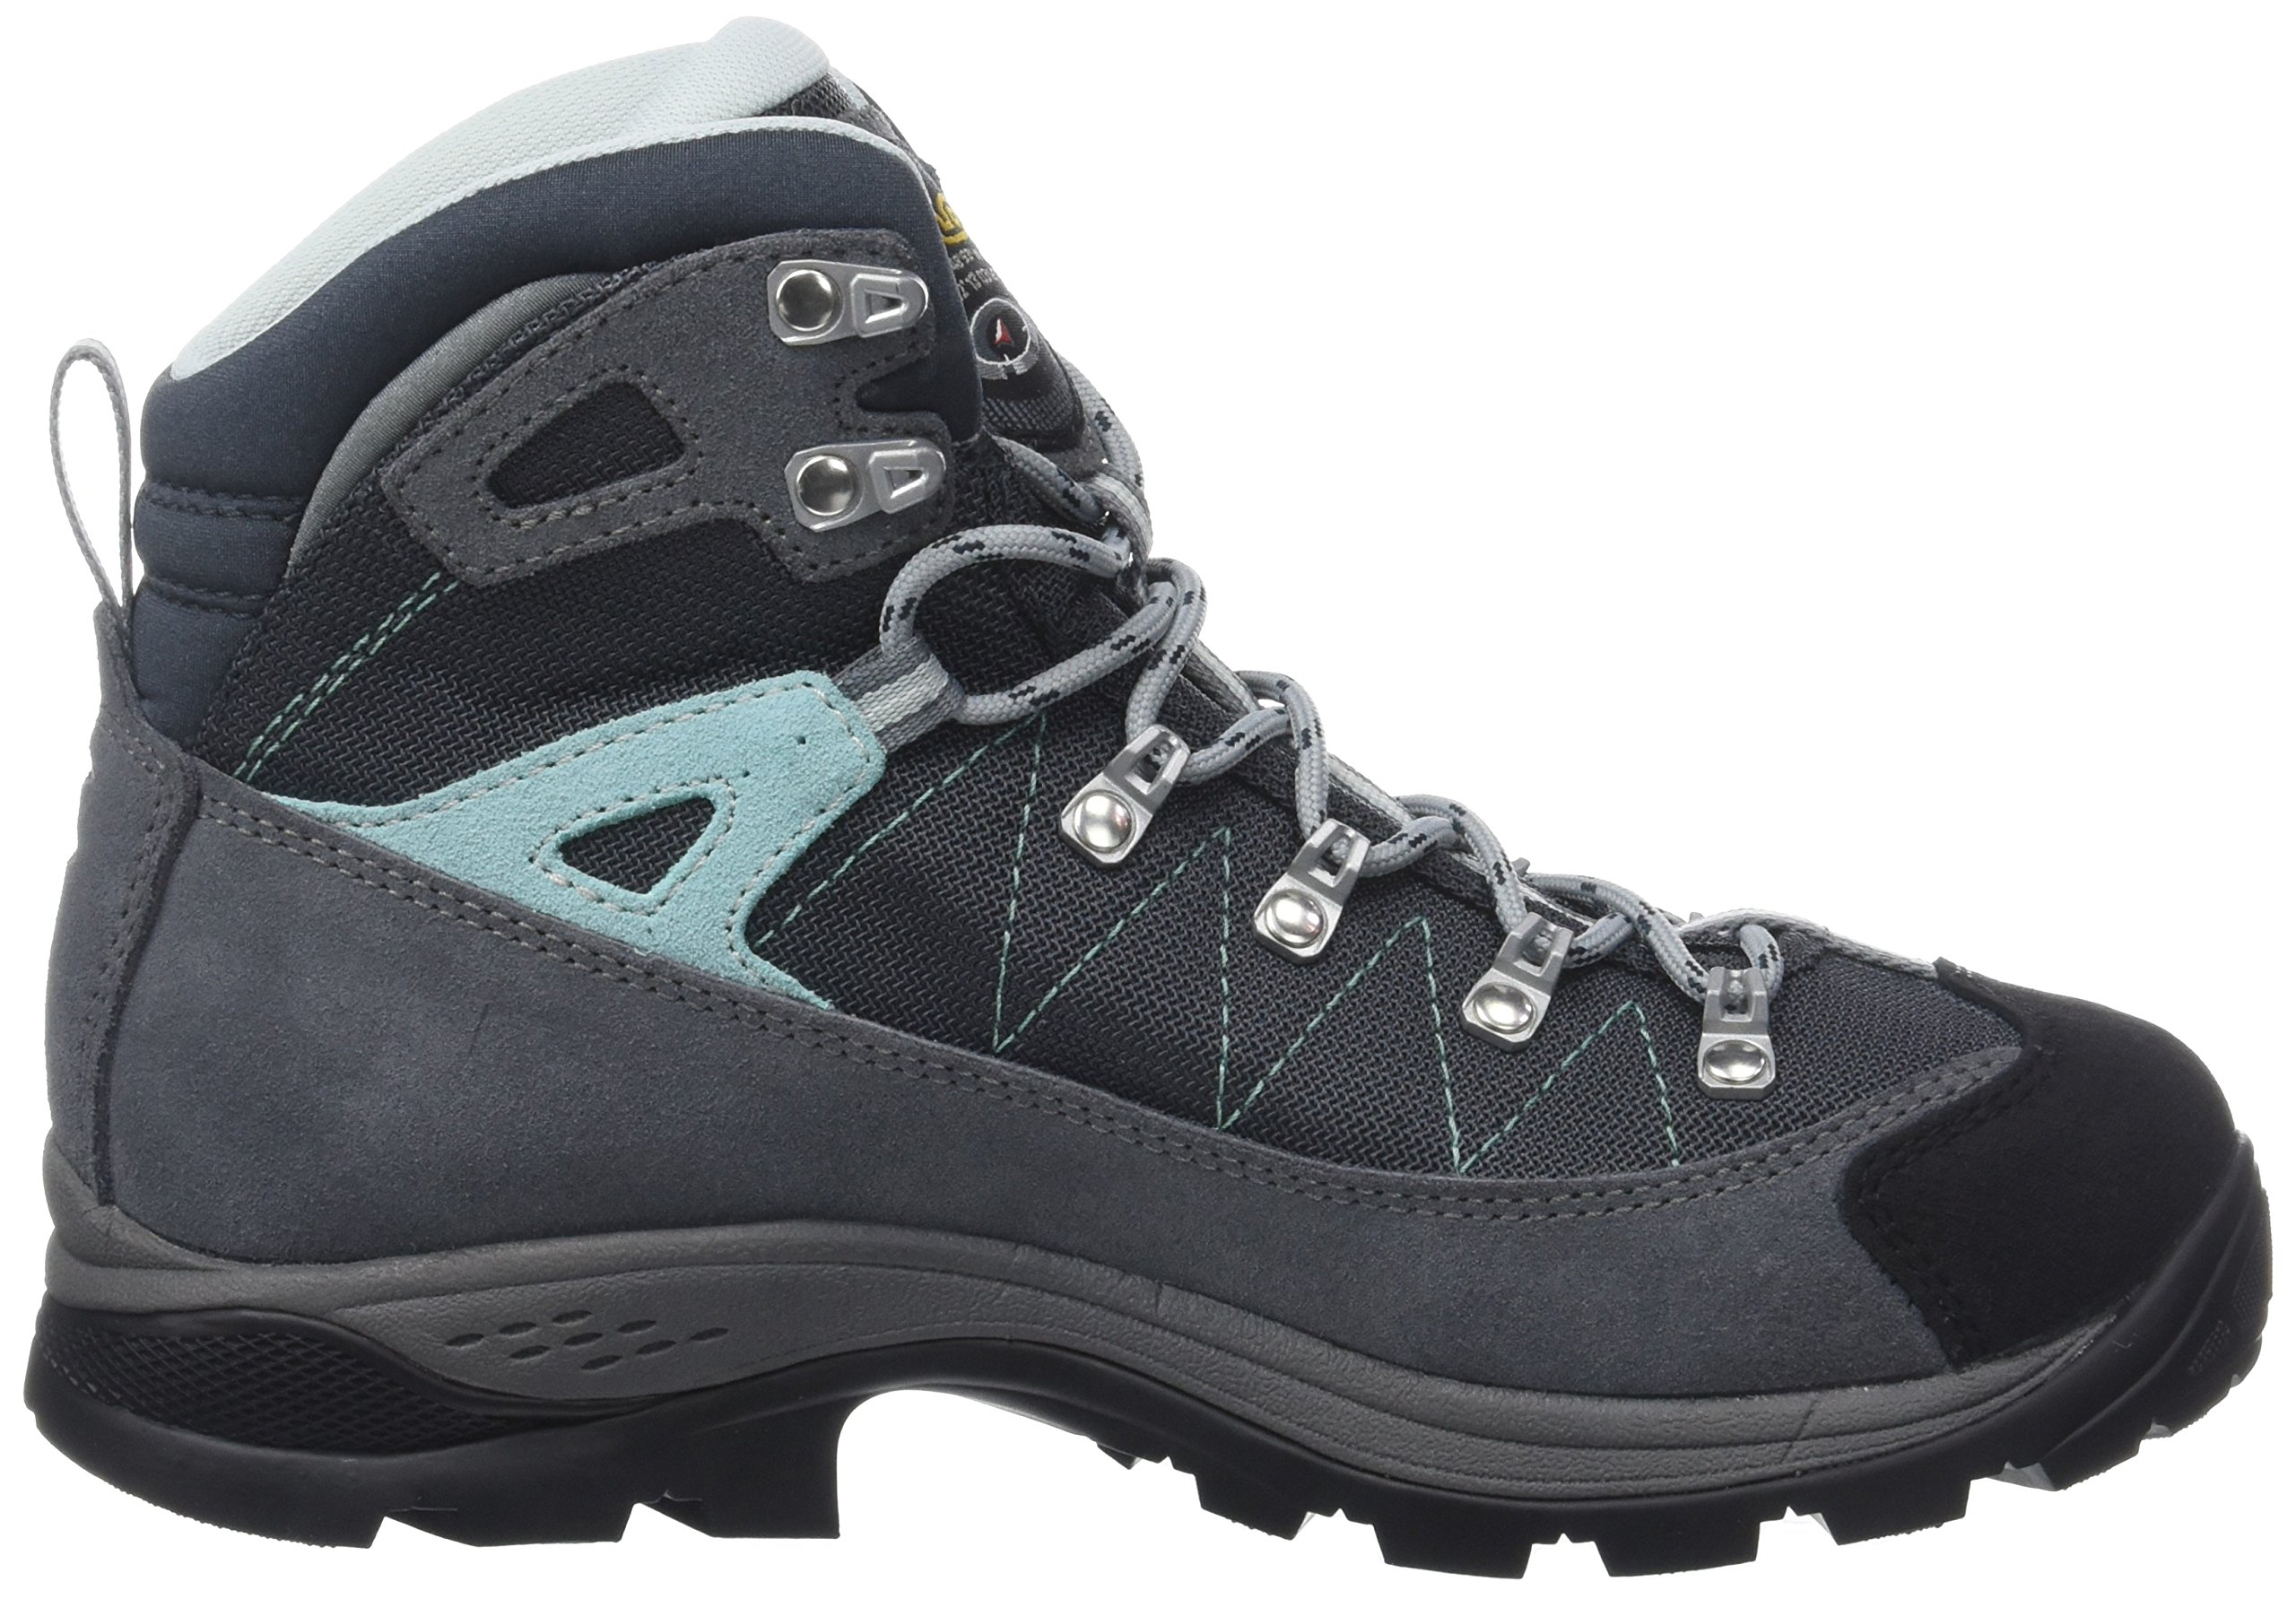 91QUpcT3ukL - Asolo Women's Finder Gv Ml Oxford Boot